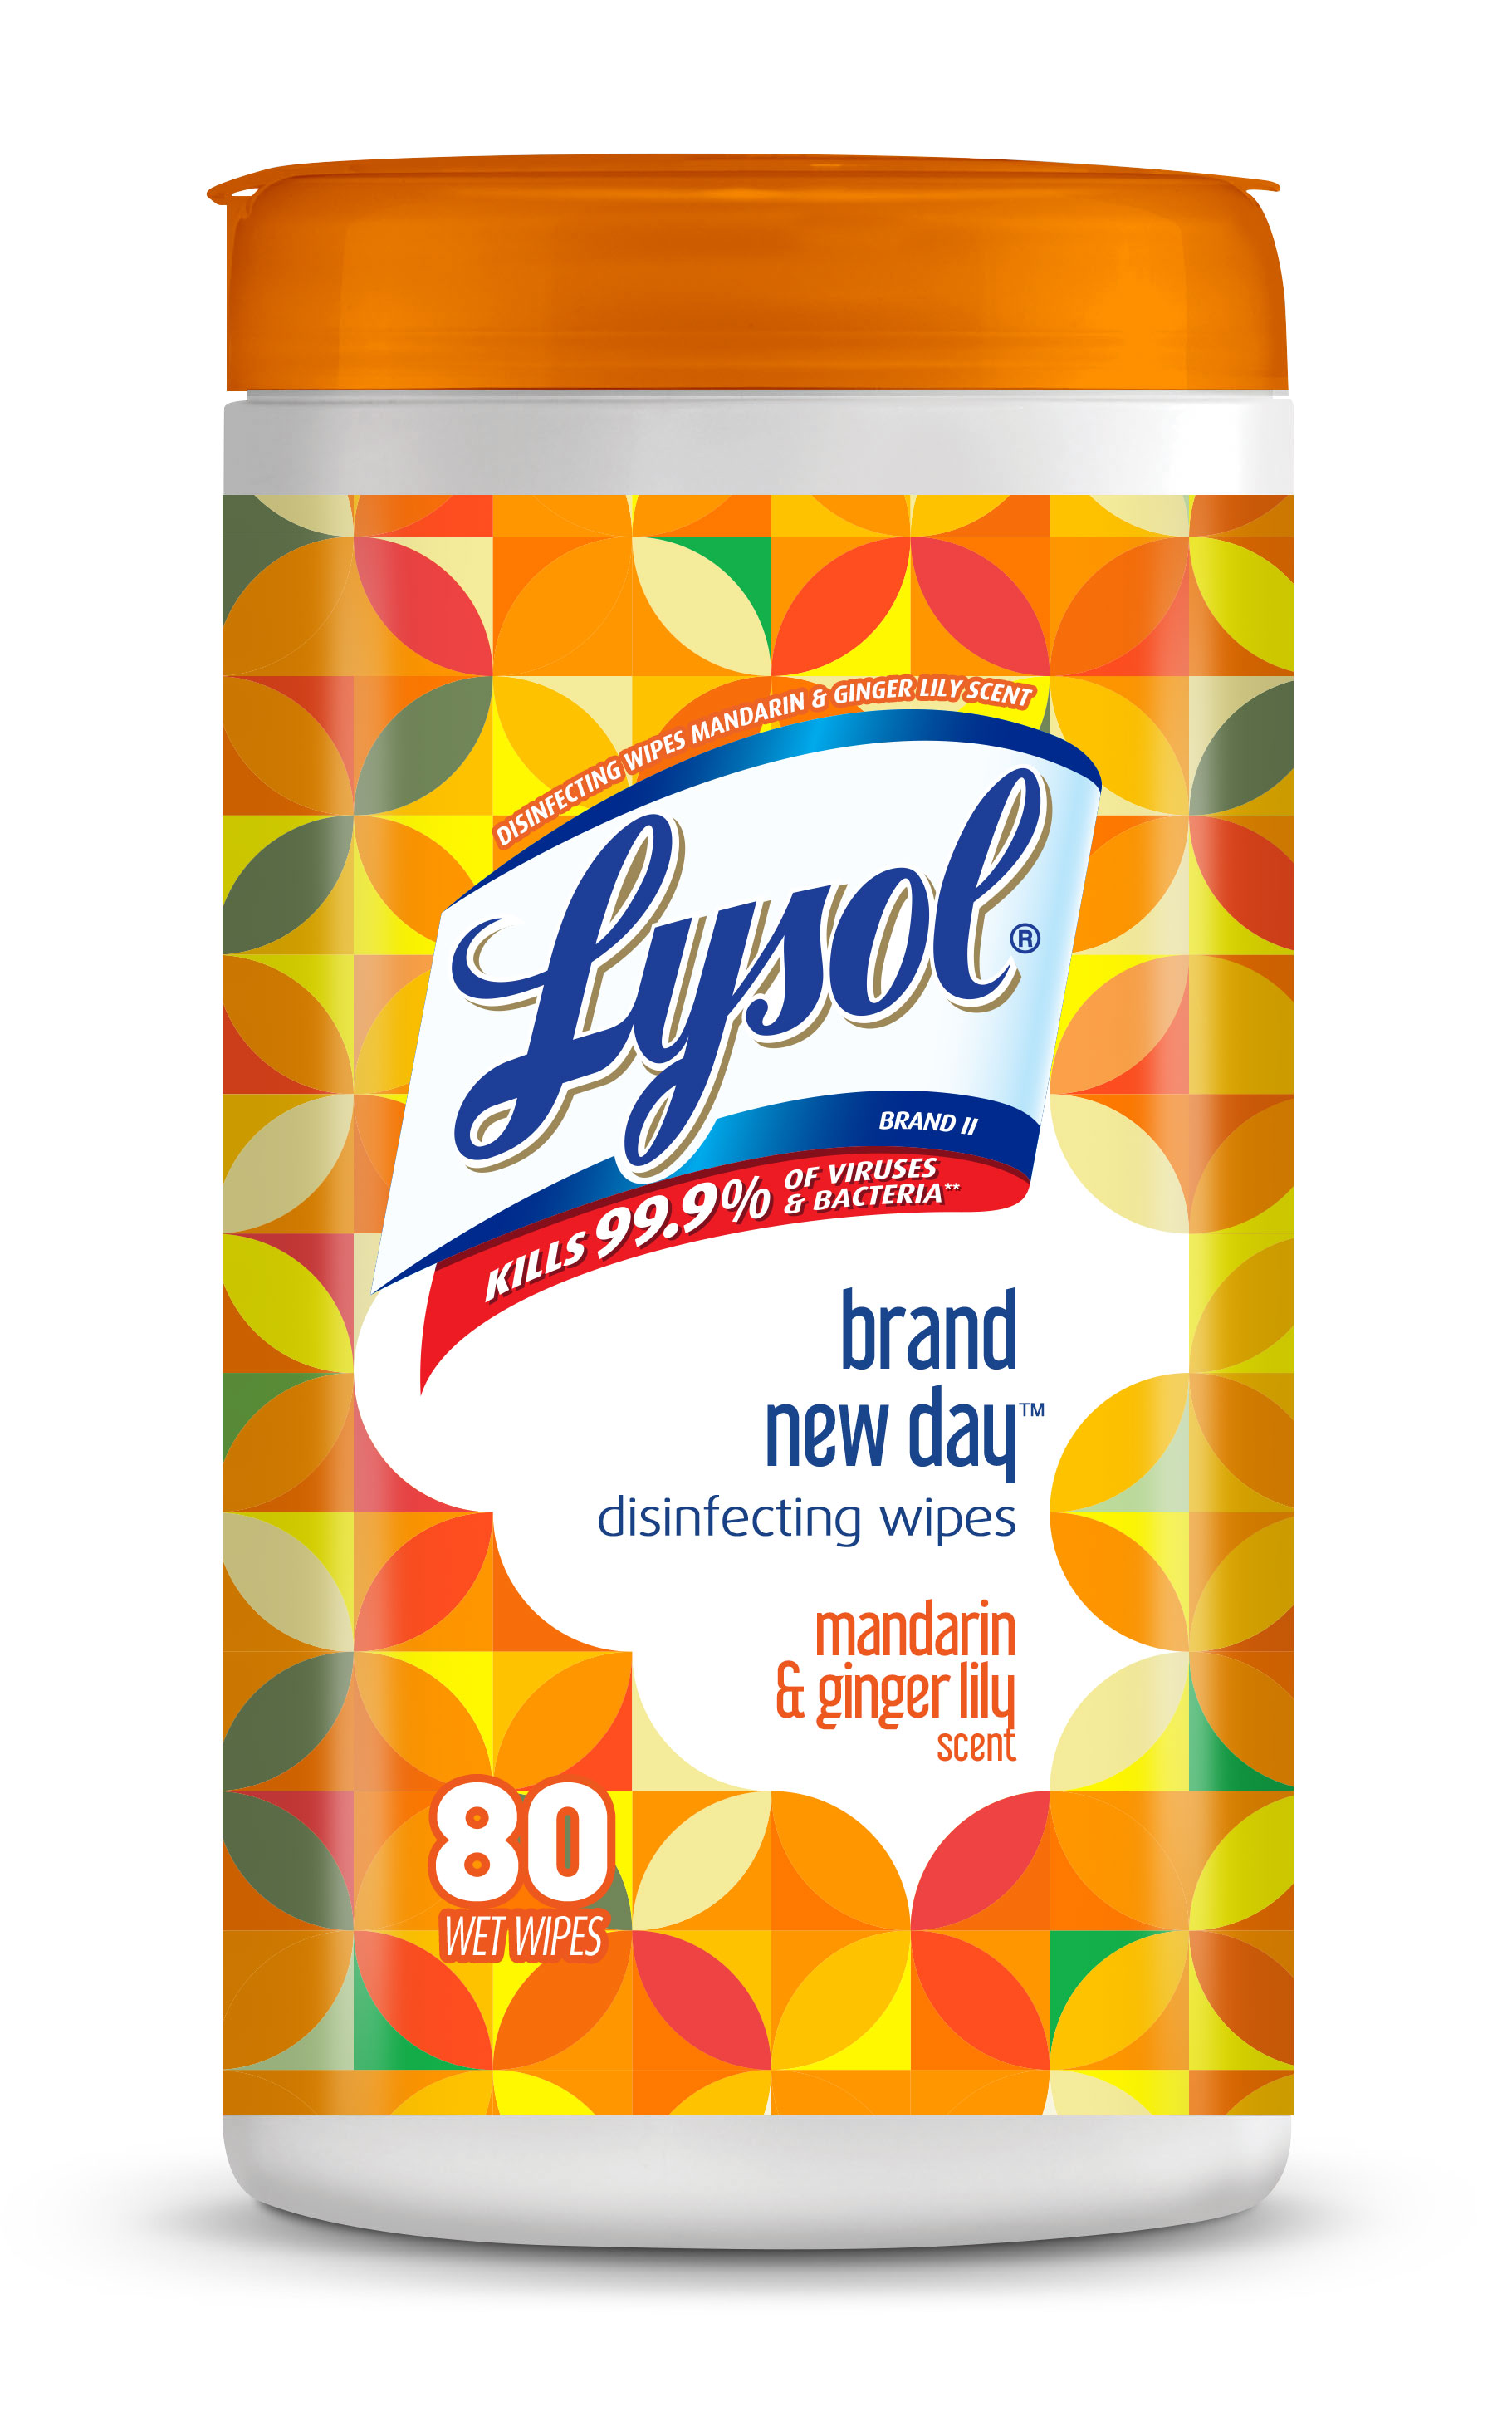 Lysol Disinfecting Wipes, Mandarin & Gingerlily, 80ct, Brand New Day